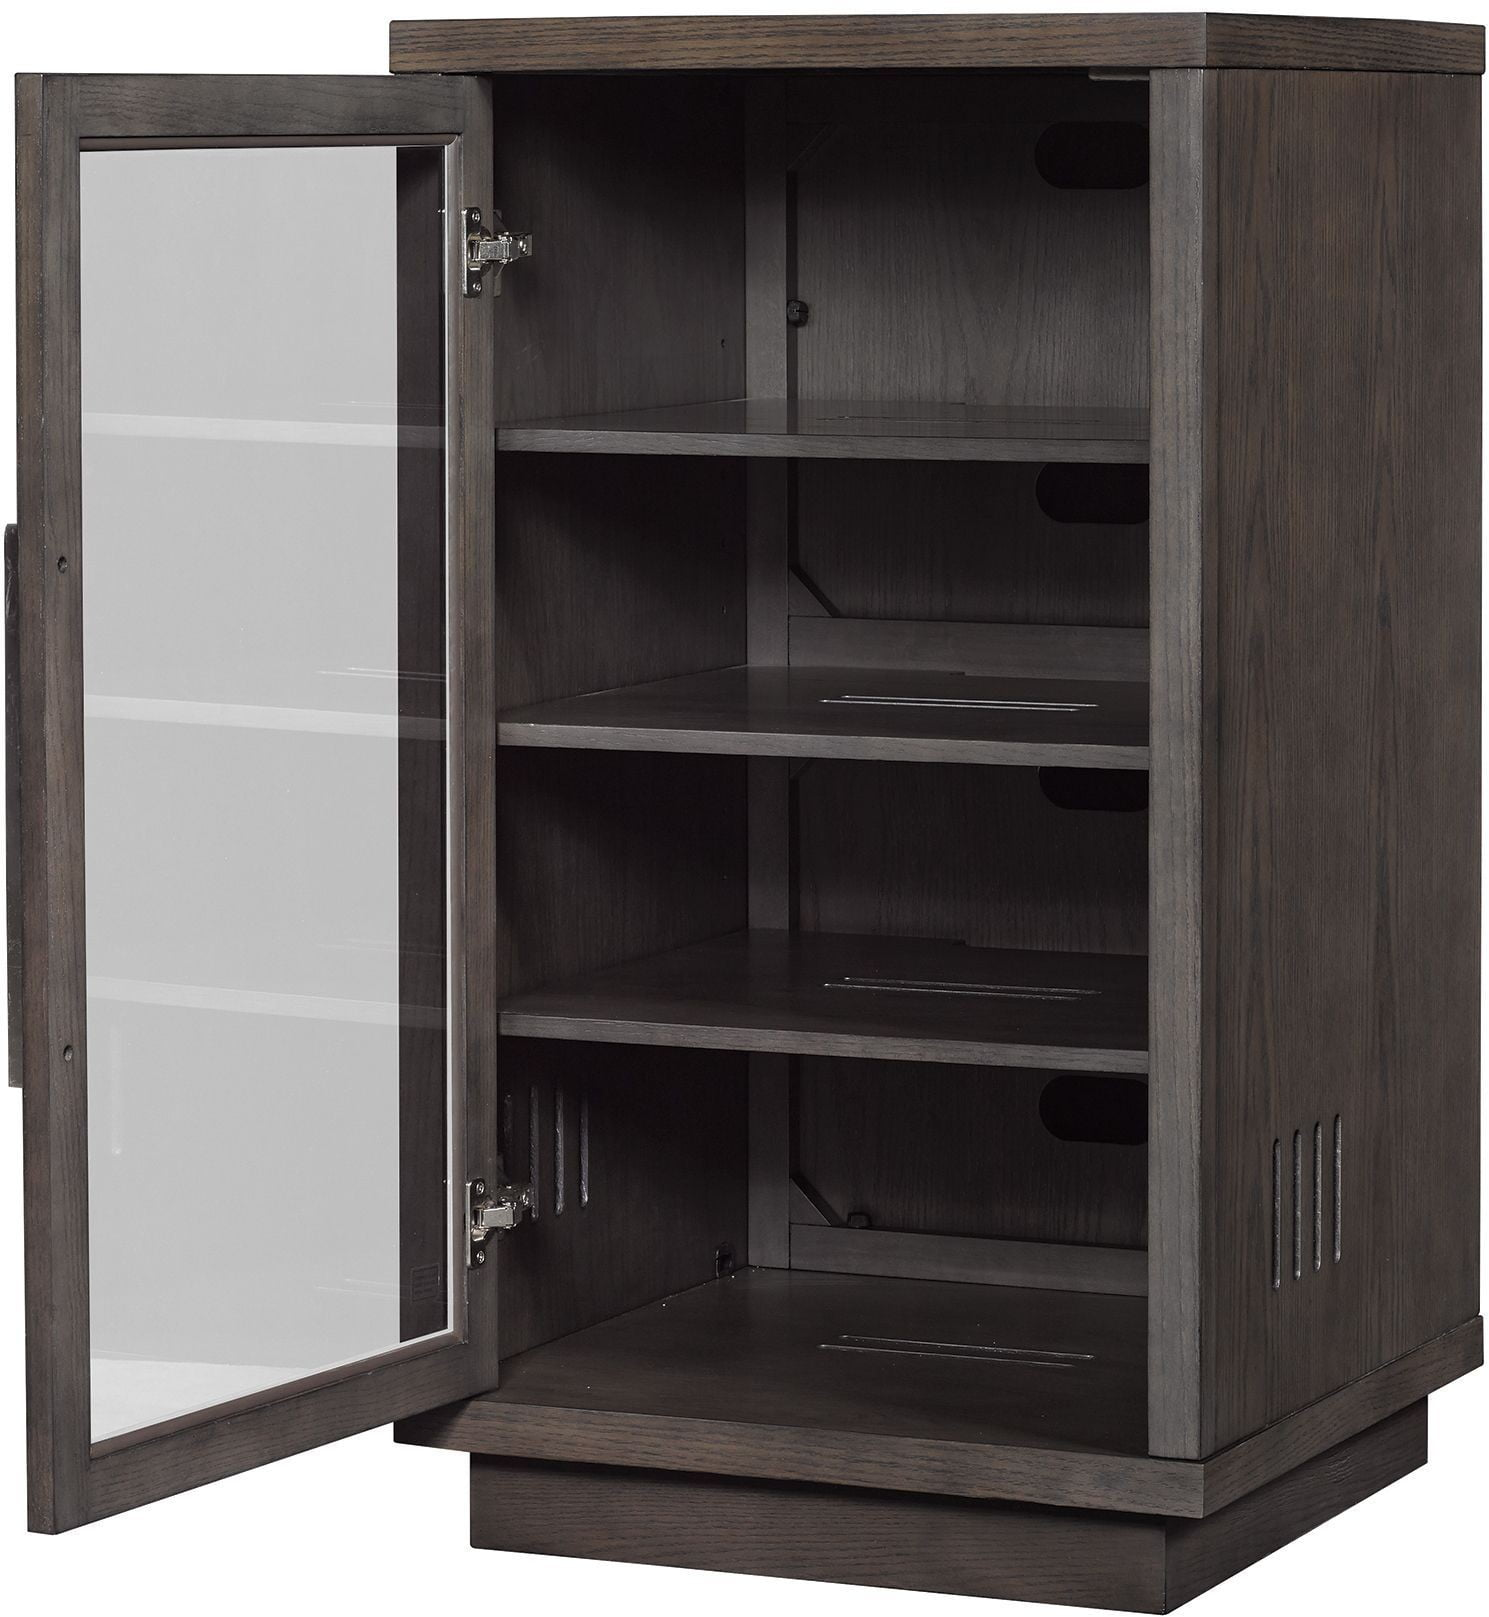 bell 39 o tifton oak arbordale audio video component cabinet from twin star international coleman. Black Bedroom Furniture Sets. Home Design Ideas